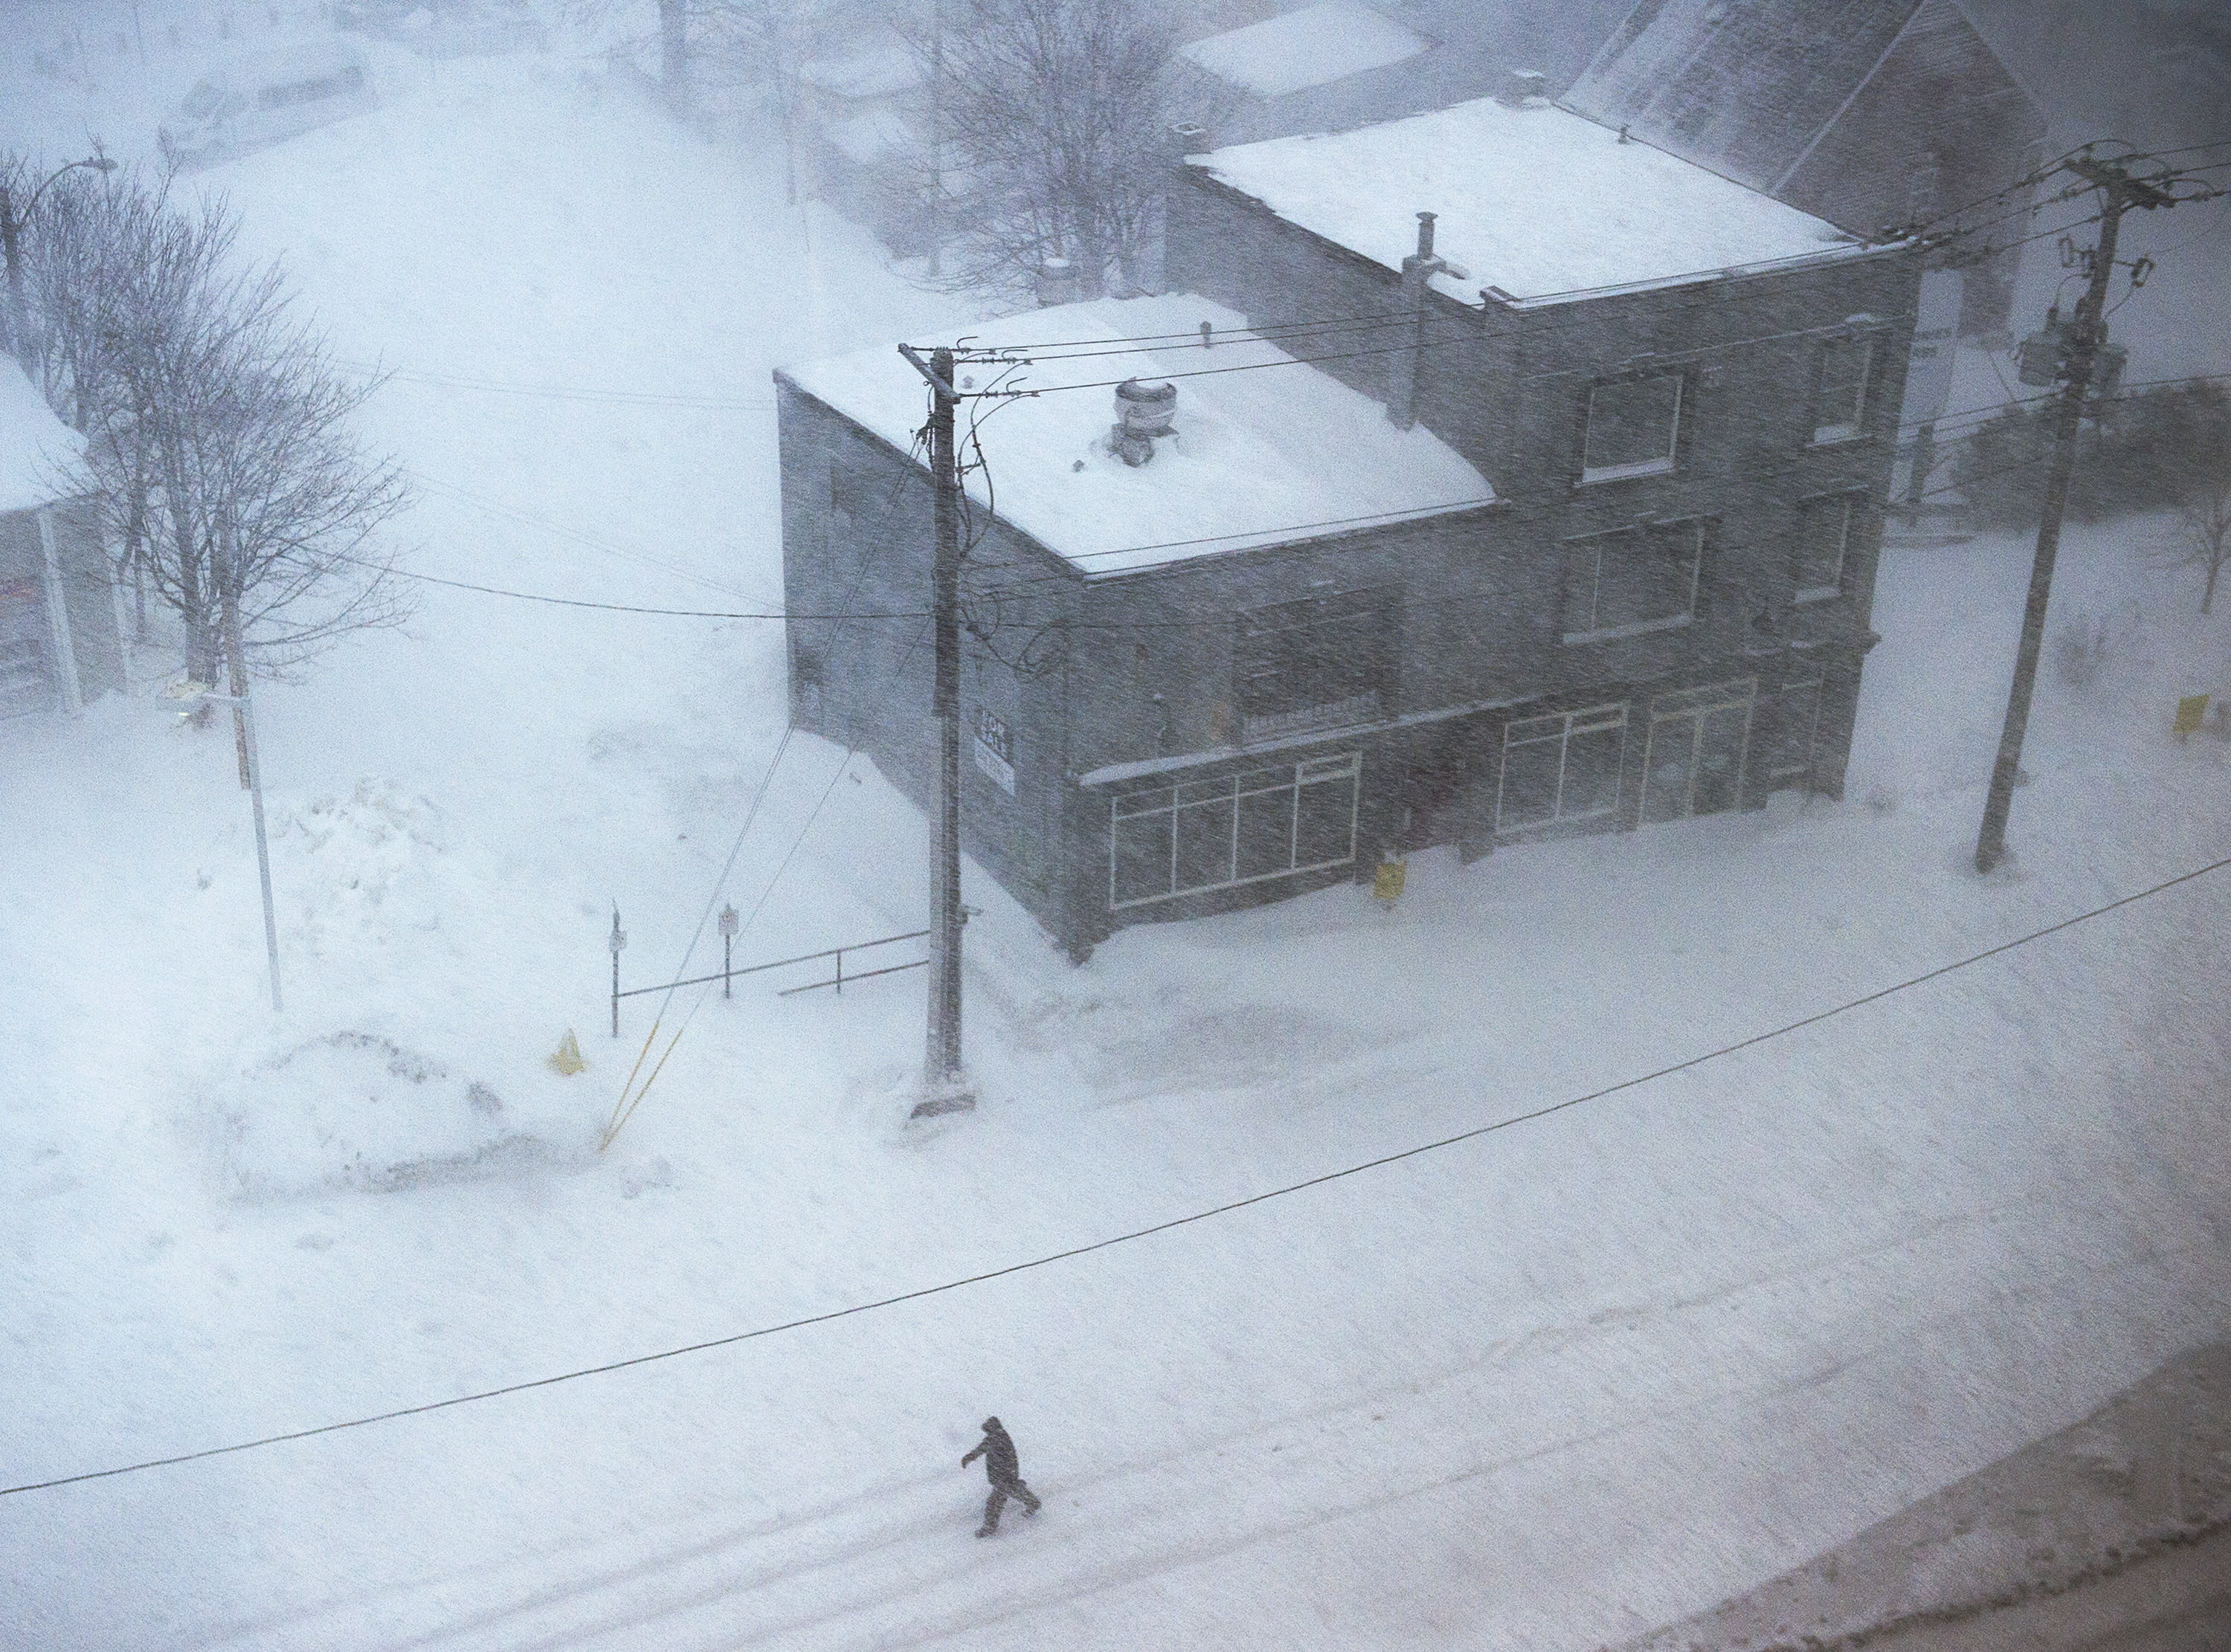 A man walks down the middle of New Gower St. as snow falls in St. John' Newfoundland on Friday, Jan. 17, 2020. The city has declared a state of emergency, ordering businesses closed and vehicles off the roads as blizzard conditions descend on the Newfoundland and Labrador capital. *Andrew Vaughan/The Canadian Press via AP)